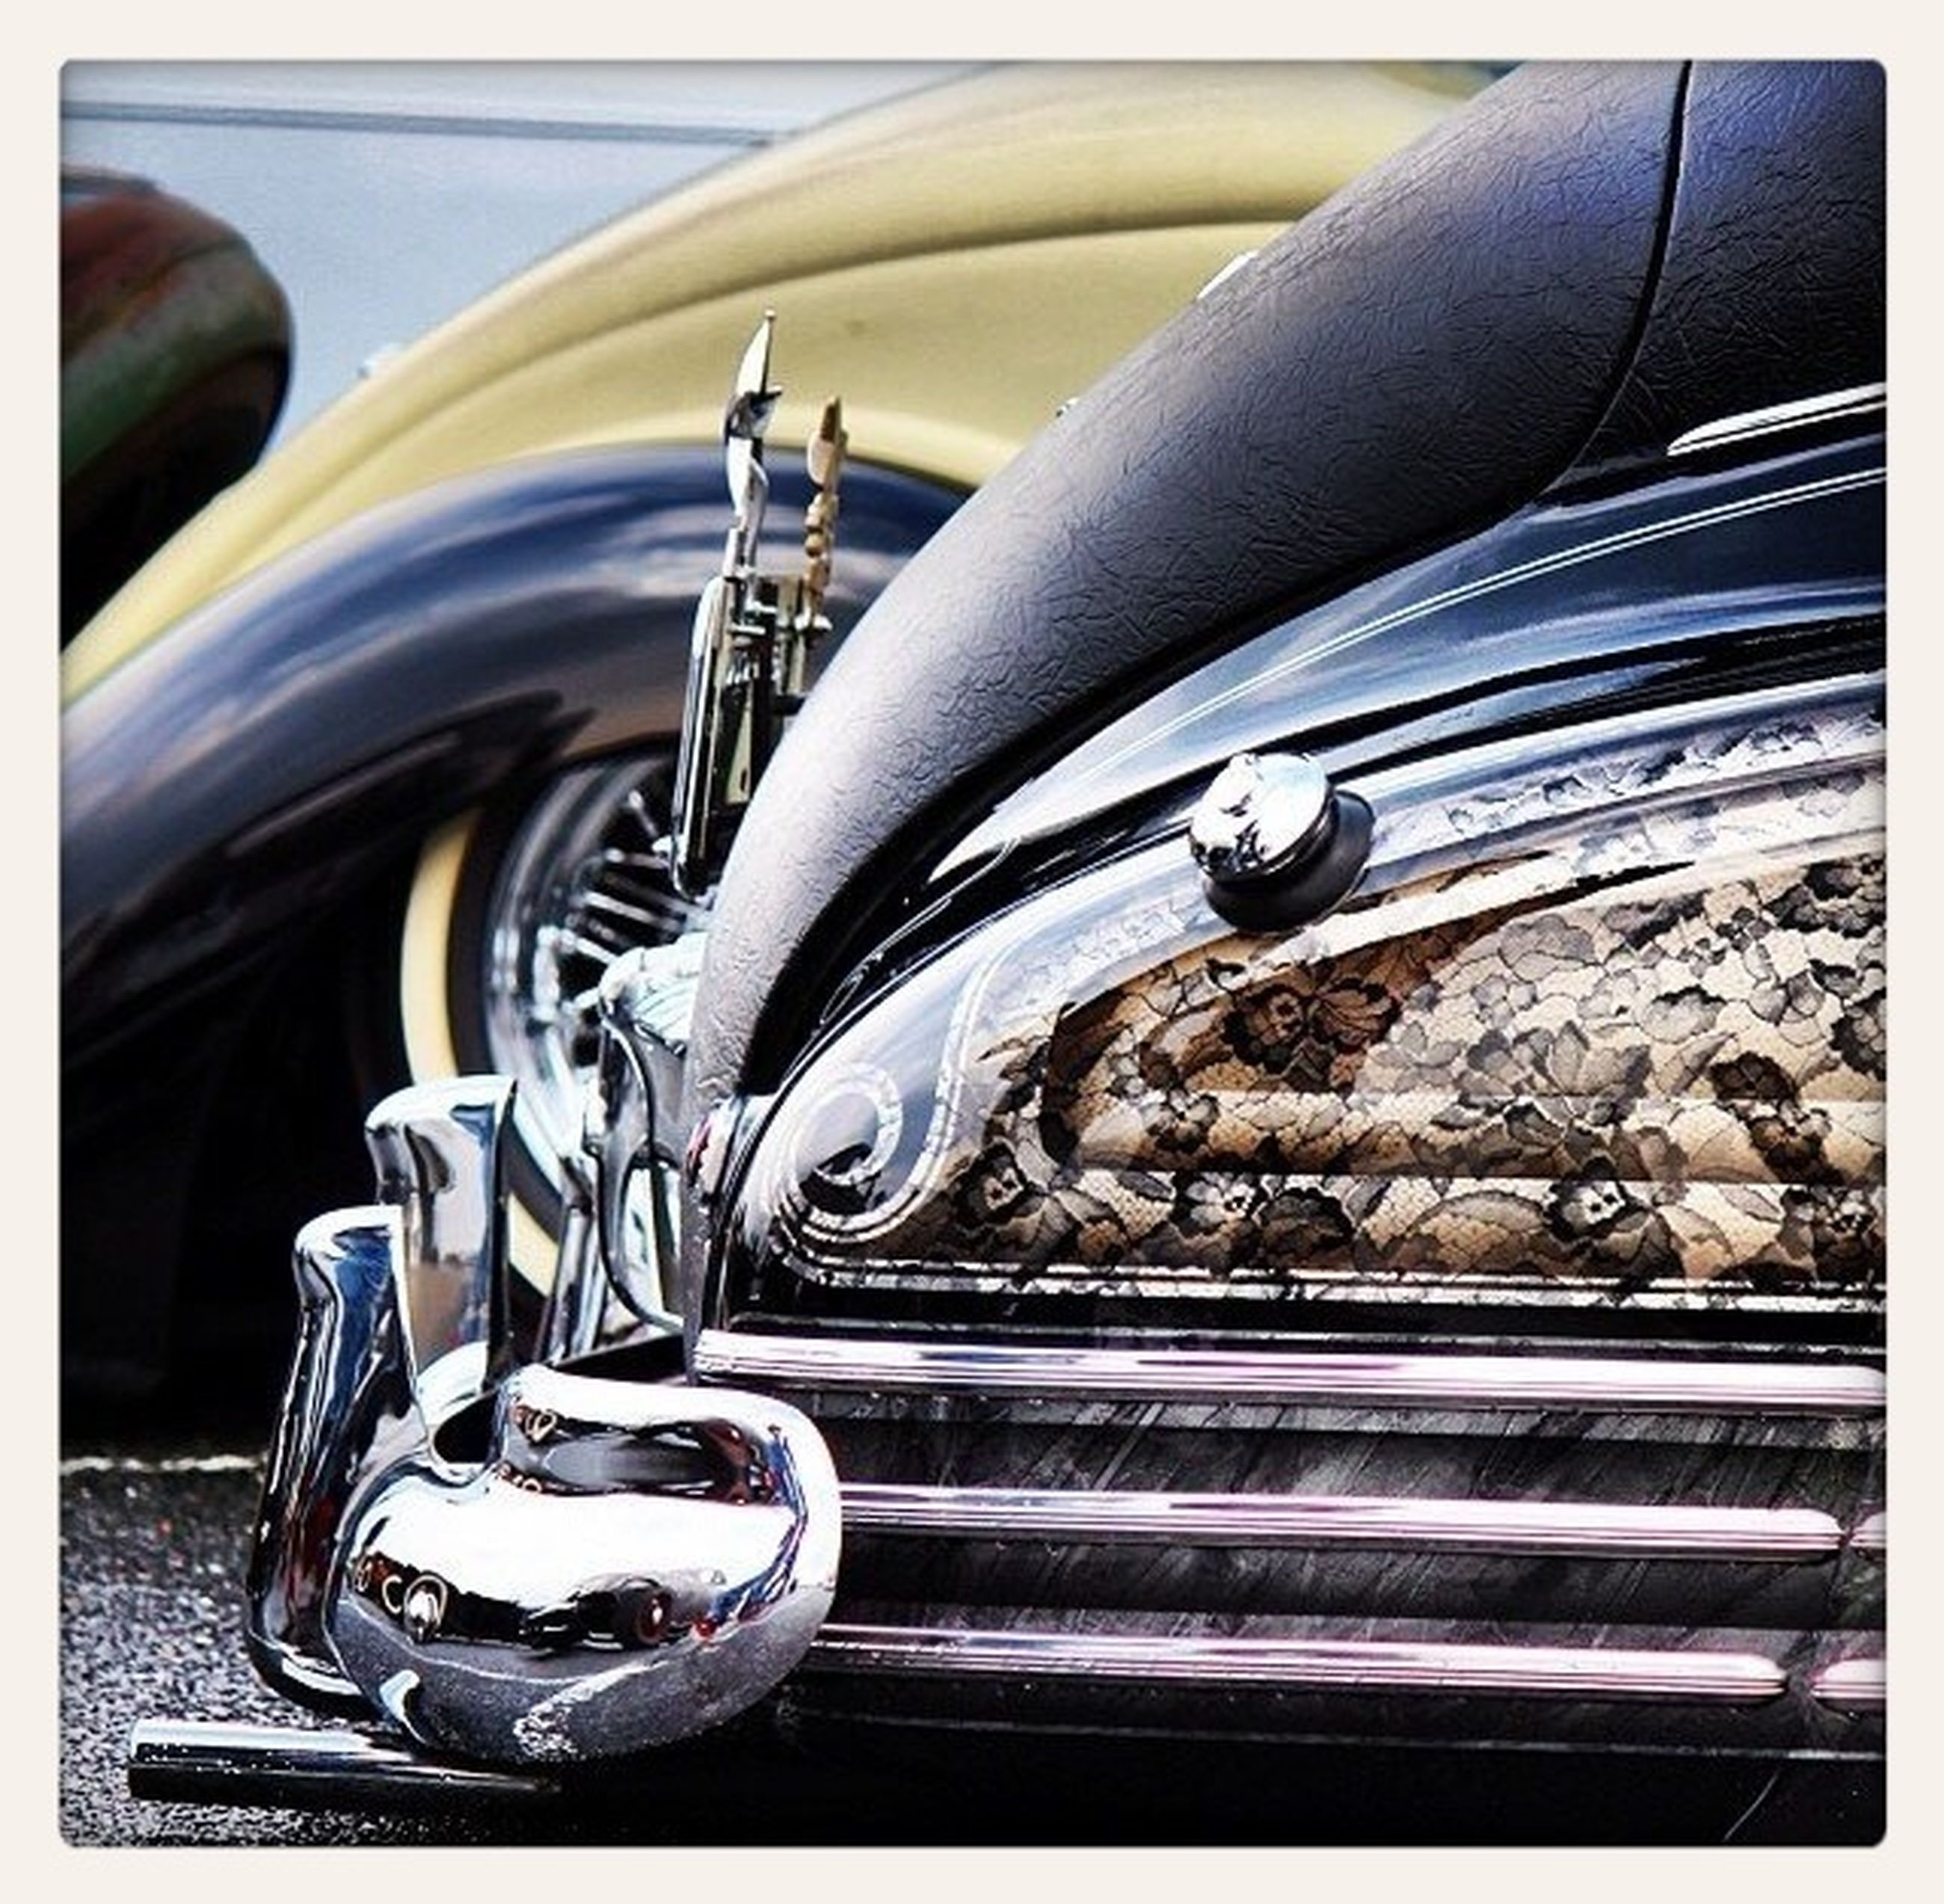 part of, indoors, close-up, transfer print, transportation, mode of transport, cropped, car, metal, land vehicle, auto post production filter, person, high angle view, focus on foreground, shiny, fork, one person, still life, music, reflection